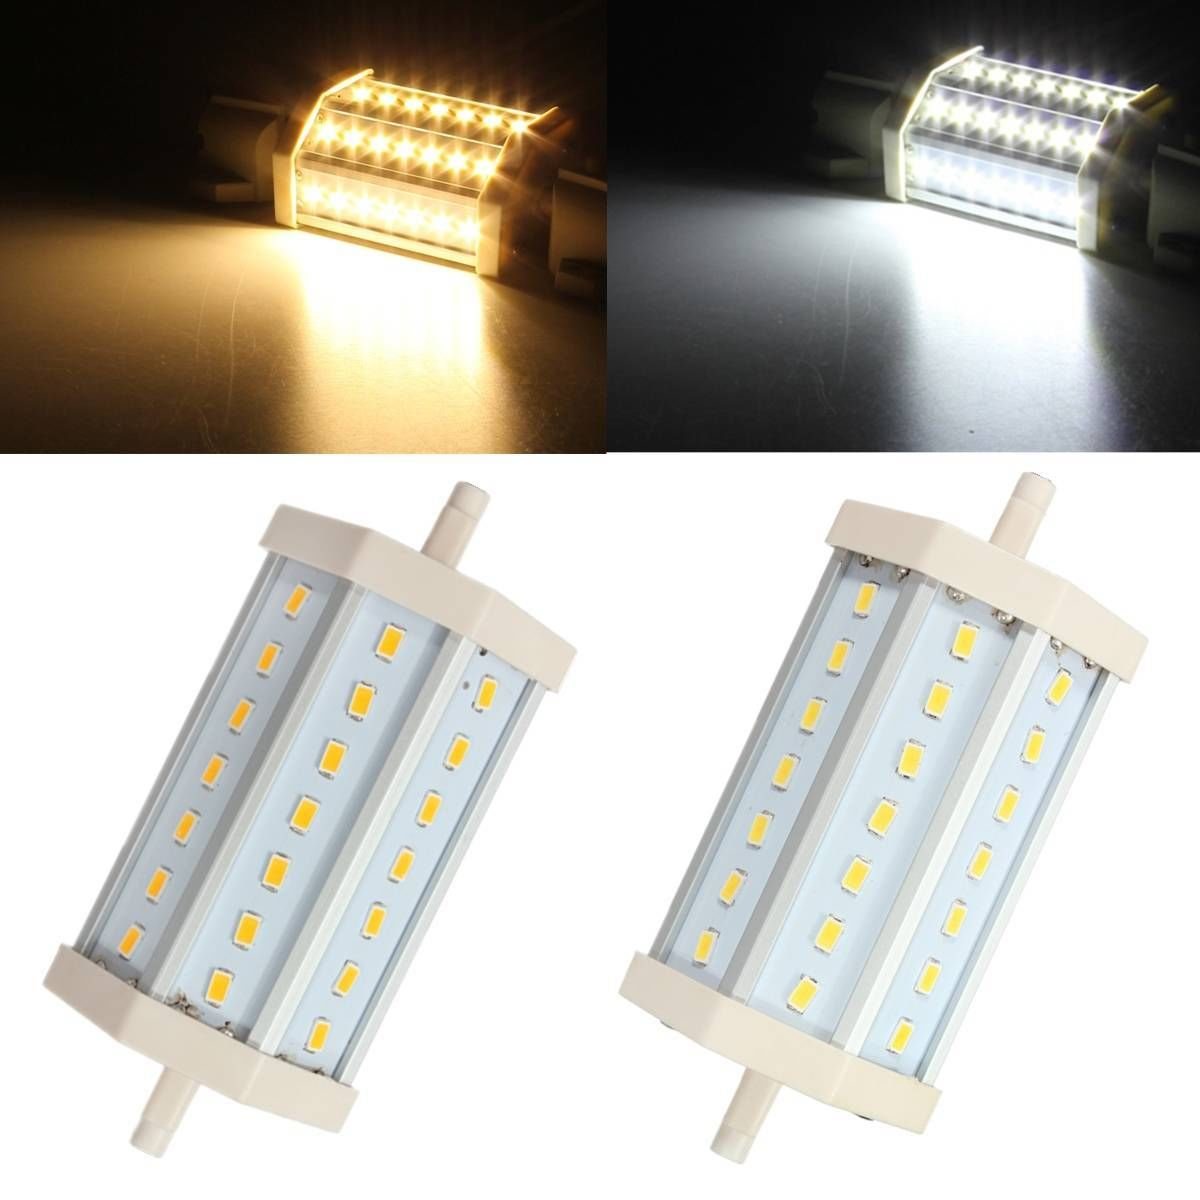 Lampade a led r7s dimmerabili for R7s led dimmerabile